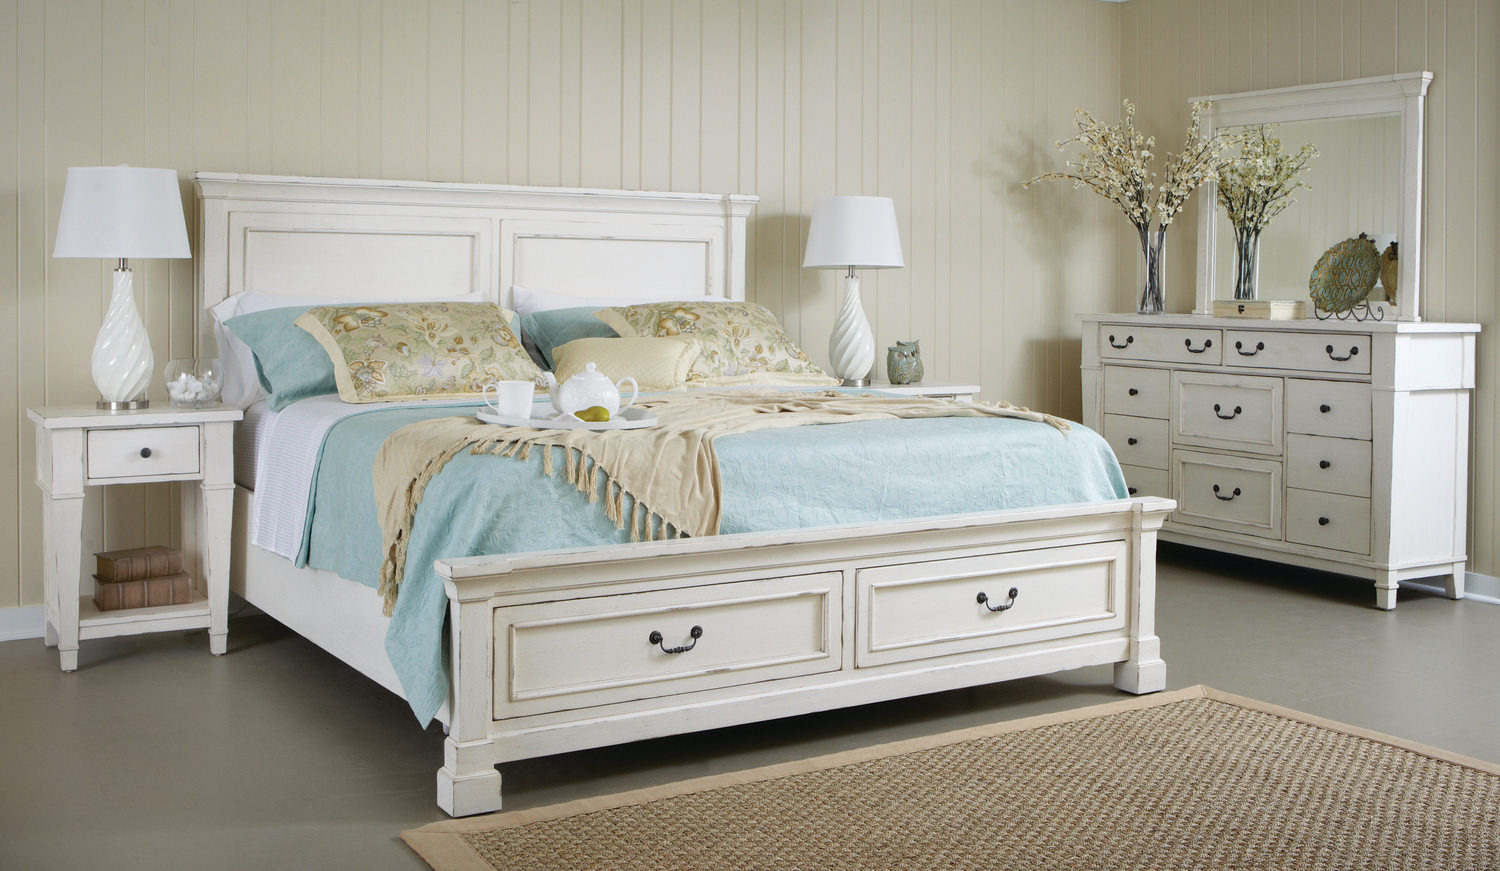 Stoney creek storage bedroom suite with 1 by hom furniture for Cheap bedroom furniture packages